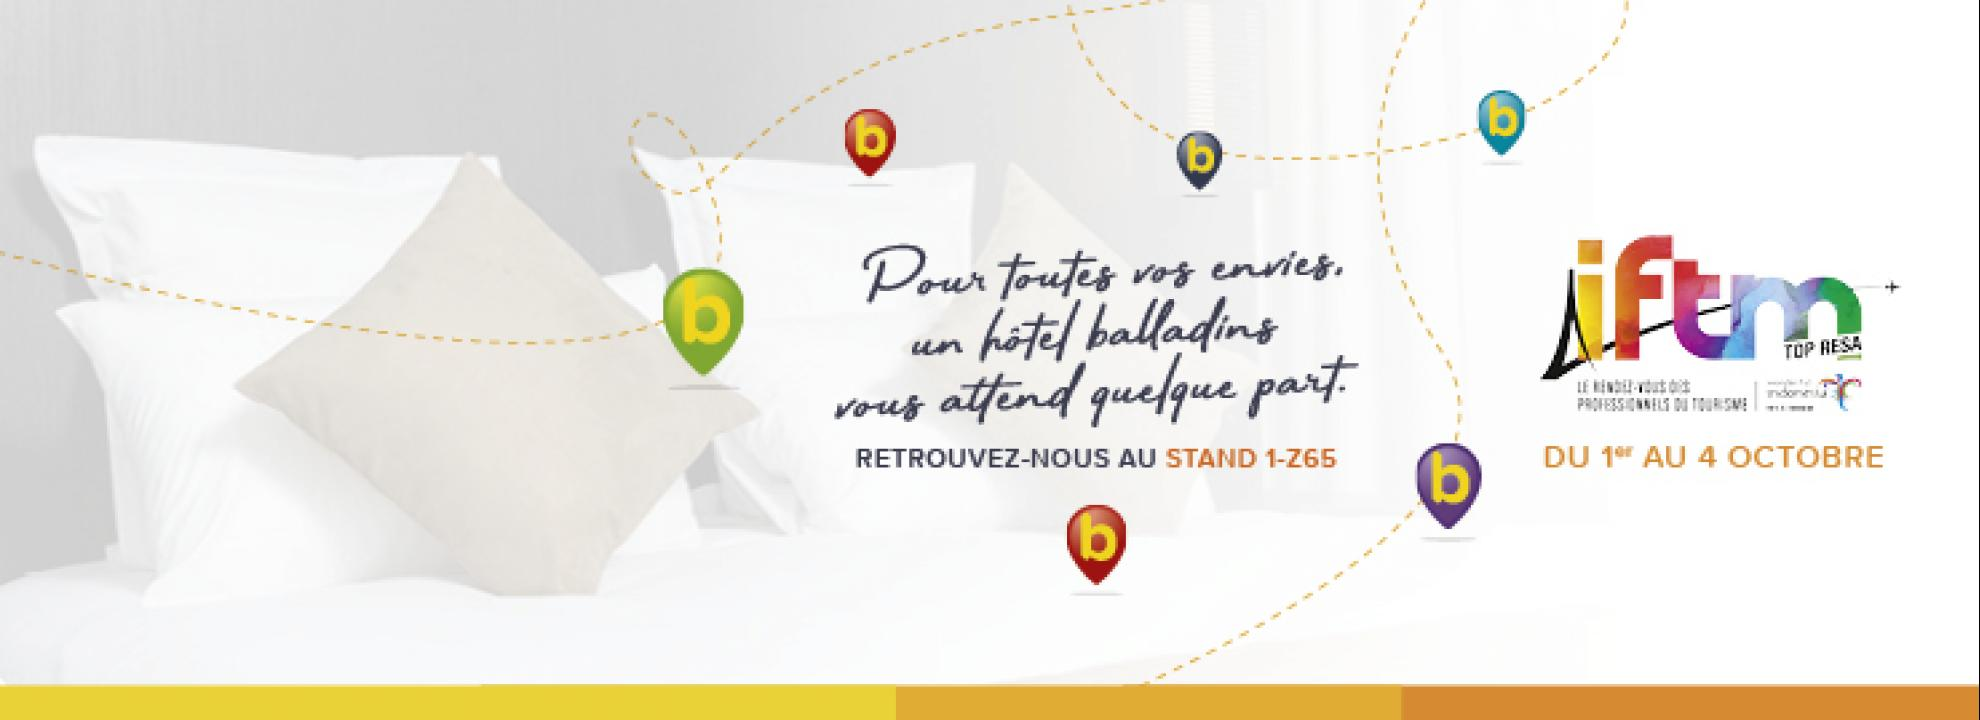 025-2019-73-site-740x500-iftm 1